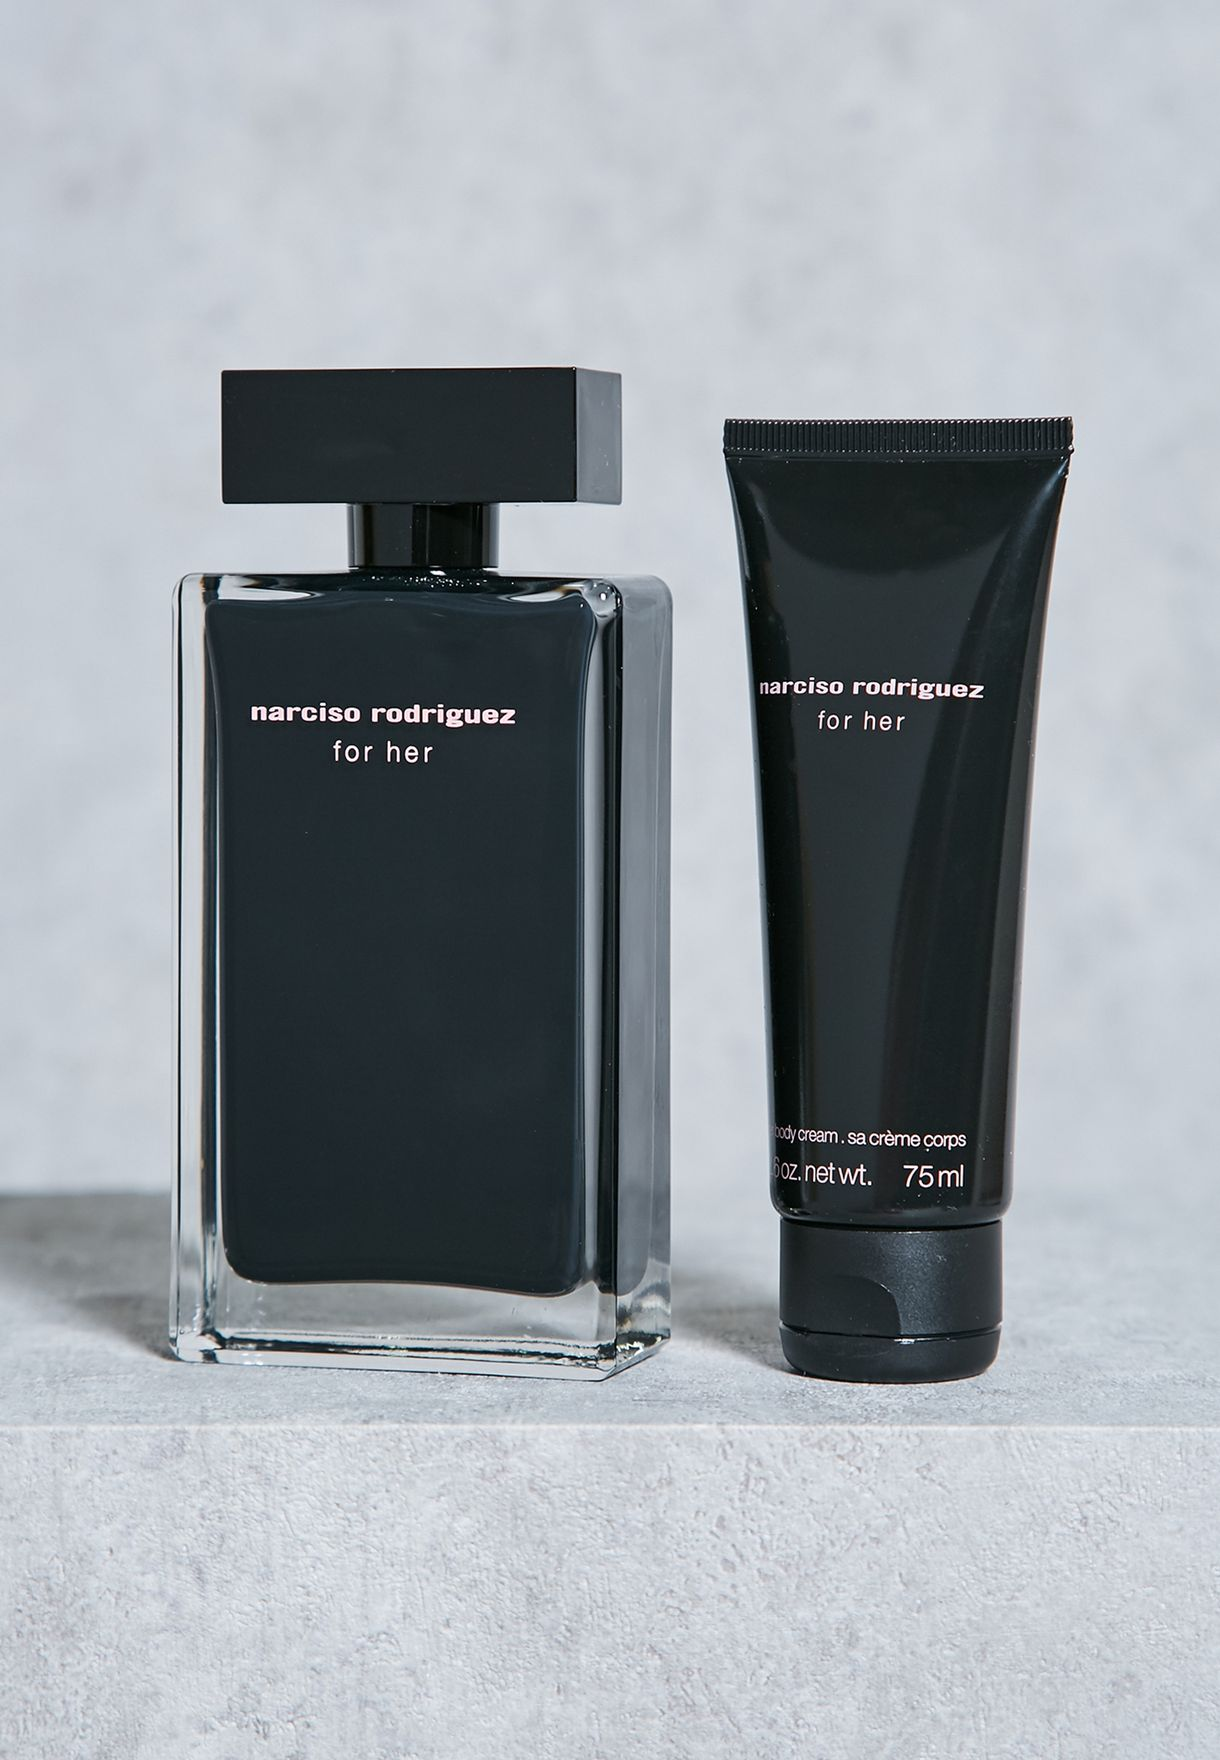 Narciso yahoo dating